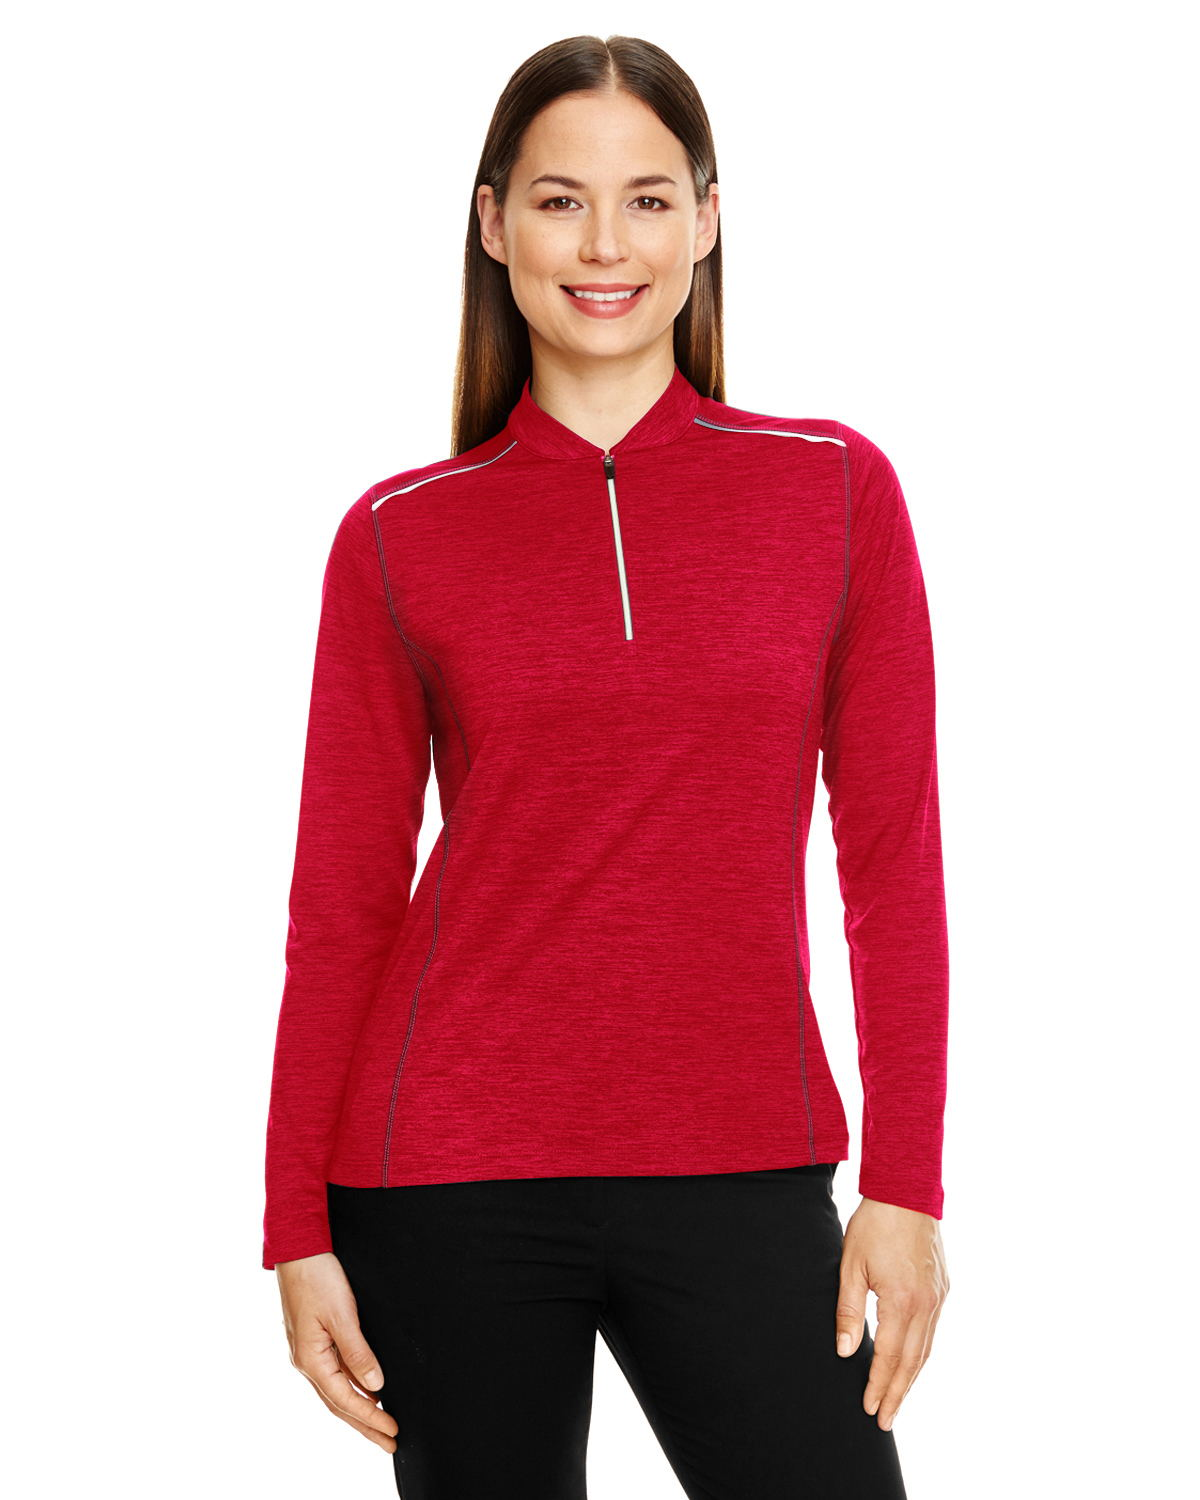 Ash City CE401W - Core 365 Ladies Kinetic Performance Quarter-Zip